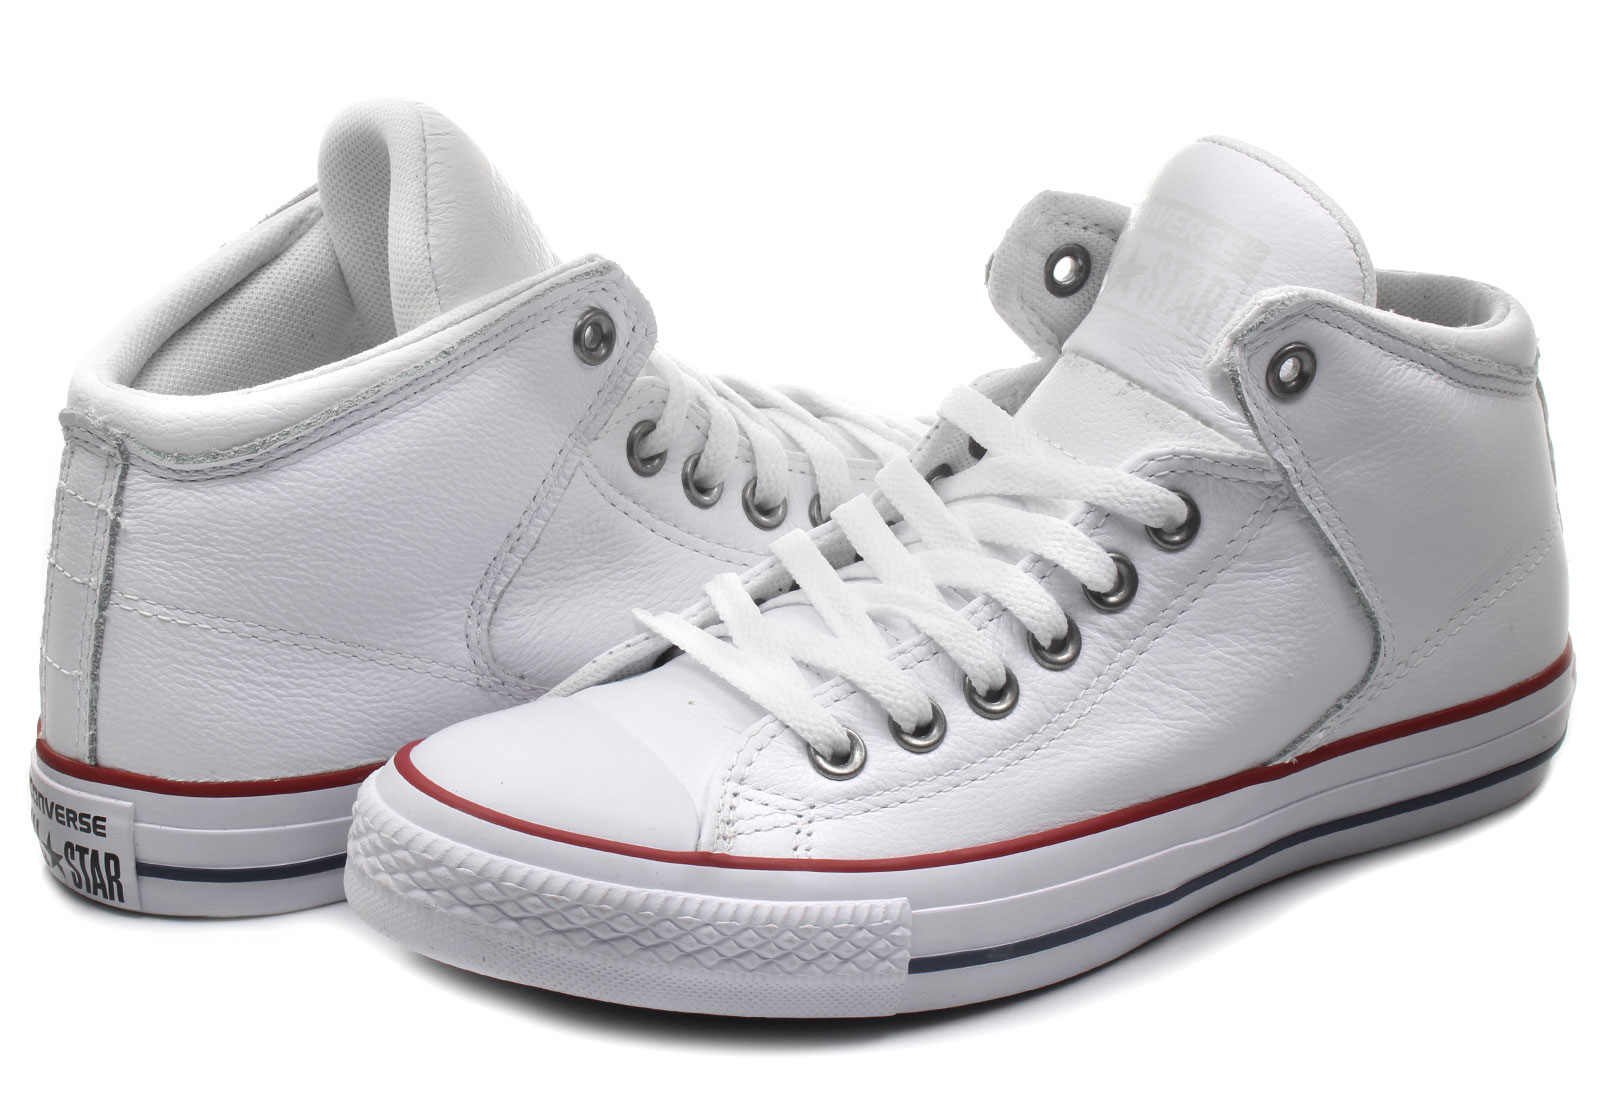 Converse Sneakers - Chuck Taylor All Star High Street Hi - 151053C ... ba1427e09a